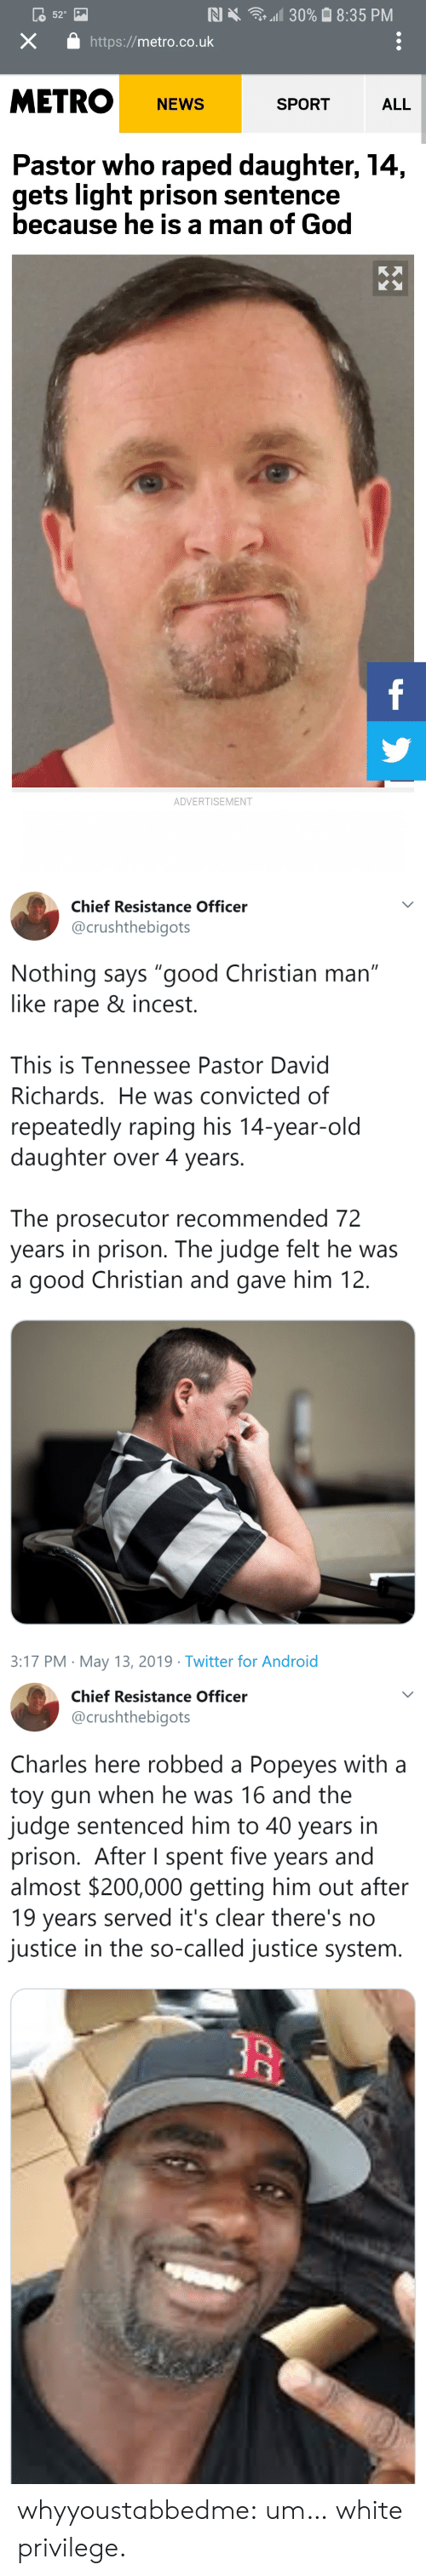 "White Privilege: 30% 8:35 PM  N X  52  X  http://metro.co.uk  METRO  SPORT  NEWS  ALL  Pastor who raped daughter, 14,  gets light prison sentence  because he is a man of God  f  ADVERTISEMENT   Chief Resistance Officer  @crushthebigots  Nothing says ""good Christian man""  like rape & incest.  II  This is Tennessee Pastor David  Richards. He was convicted of  repeatedly raping his 14-year-old  daughter over 4 years.  The prosecutor recommended 72  years in prison. The judge felt he was  good Christian and gave him 12.  a  3:17 PM May 13, 2019 Twitter for Android   Chief Resistance Officer  @crushthebigots  Charles here robbed a Popeyes with a  toy gun when he was 16 and the  judge sentenced him to 40 years in  prison. After I spent five years and  almost $200,000 getting him out after  19 years served it's clear there's no  justice in the so-called justice system. whyyoustabbedme:  um… white privilege."